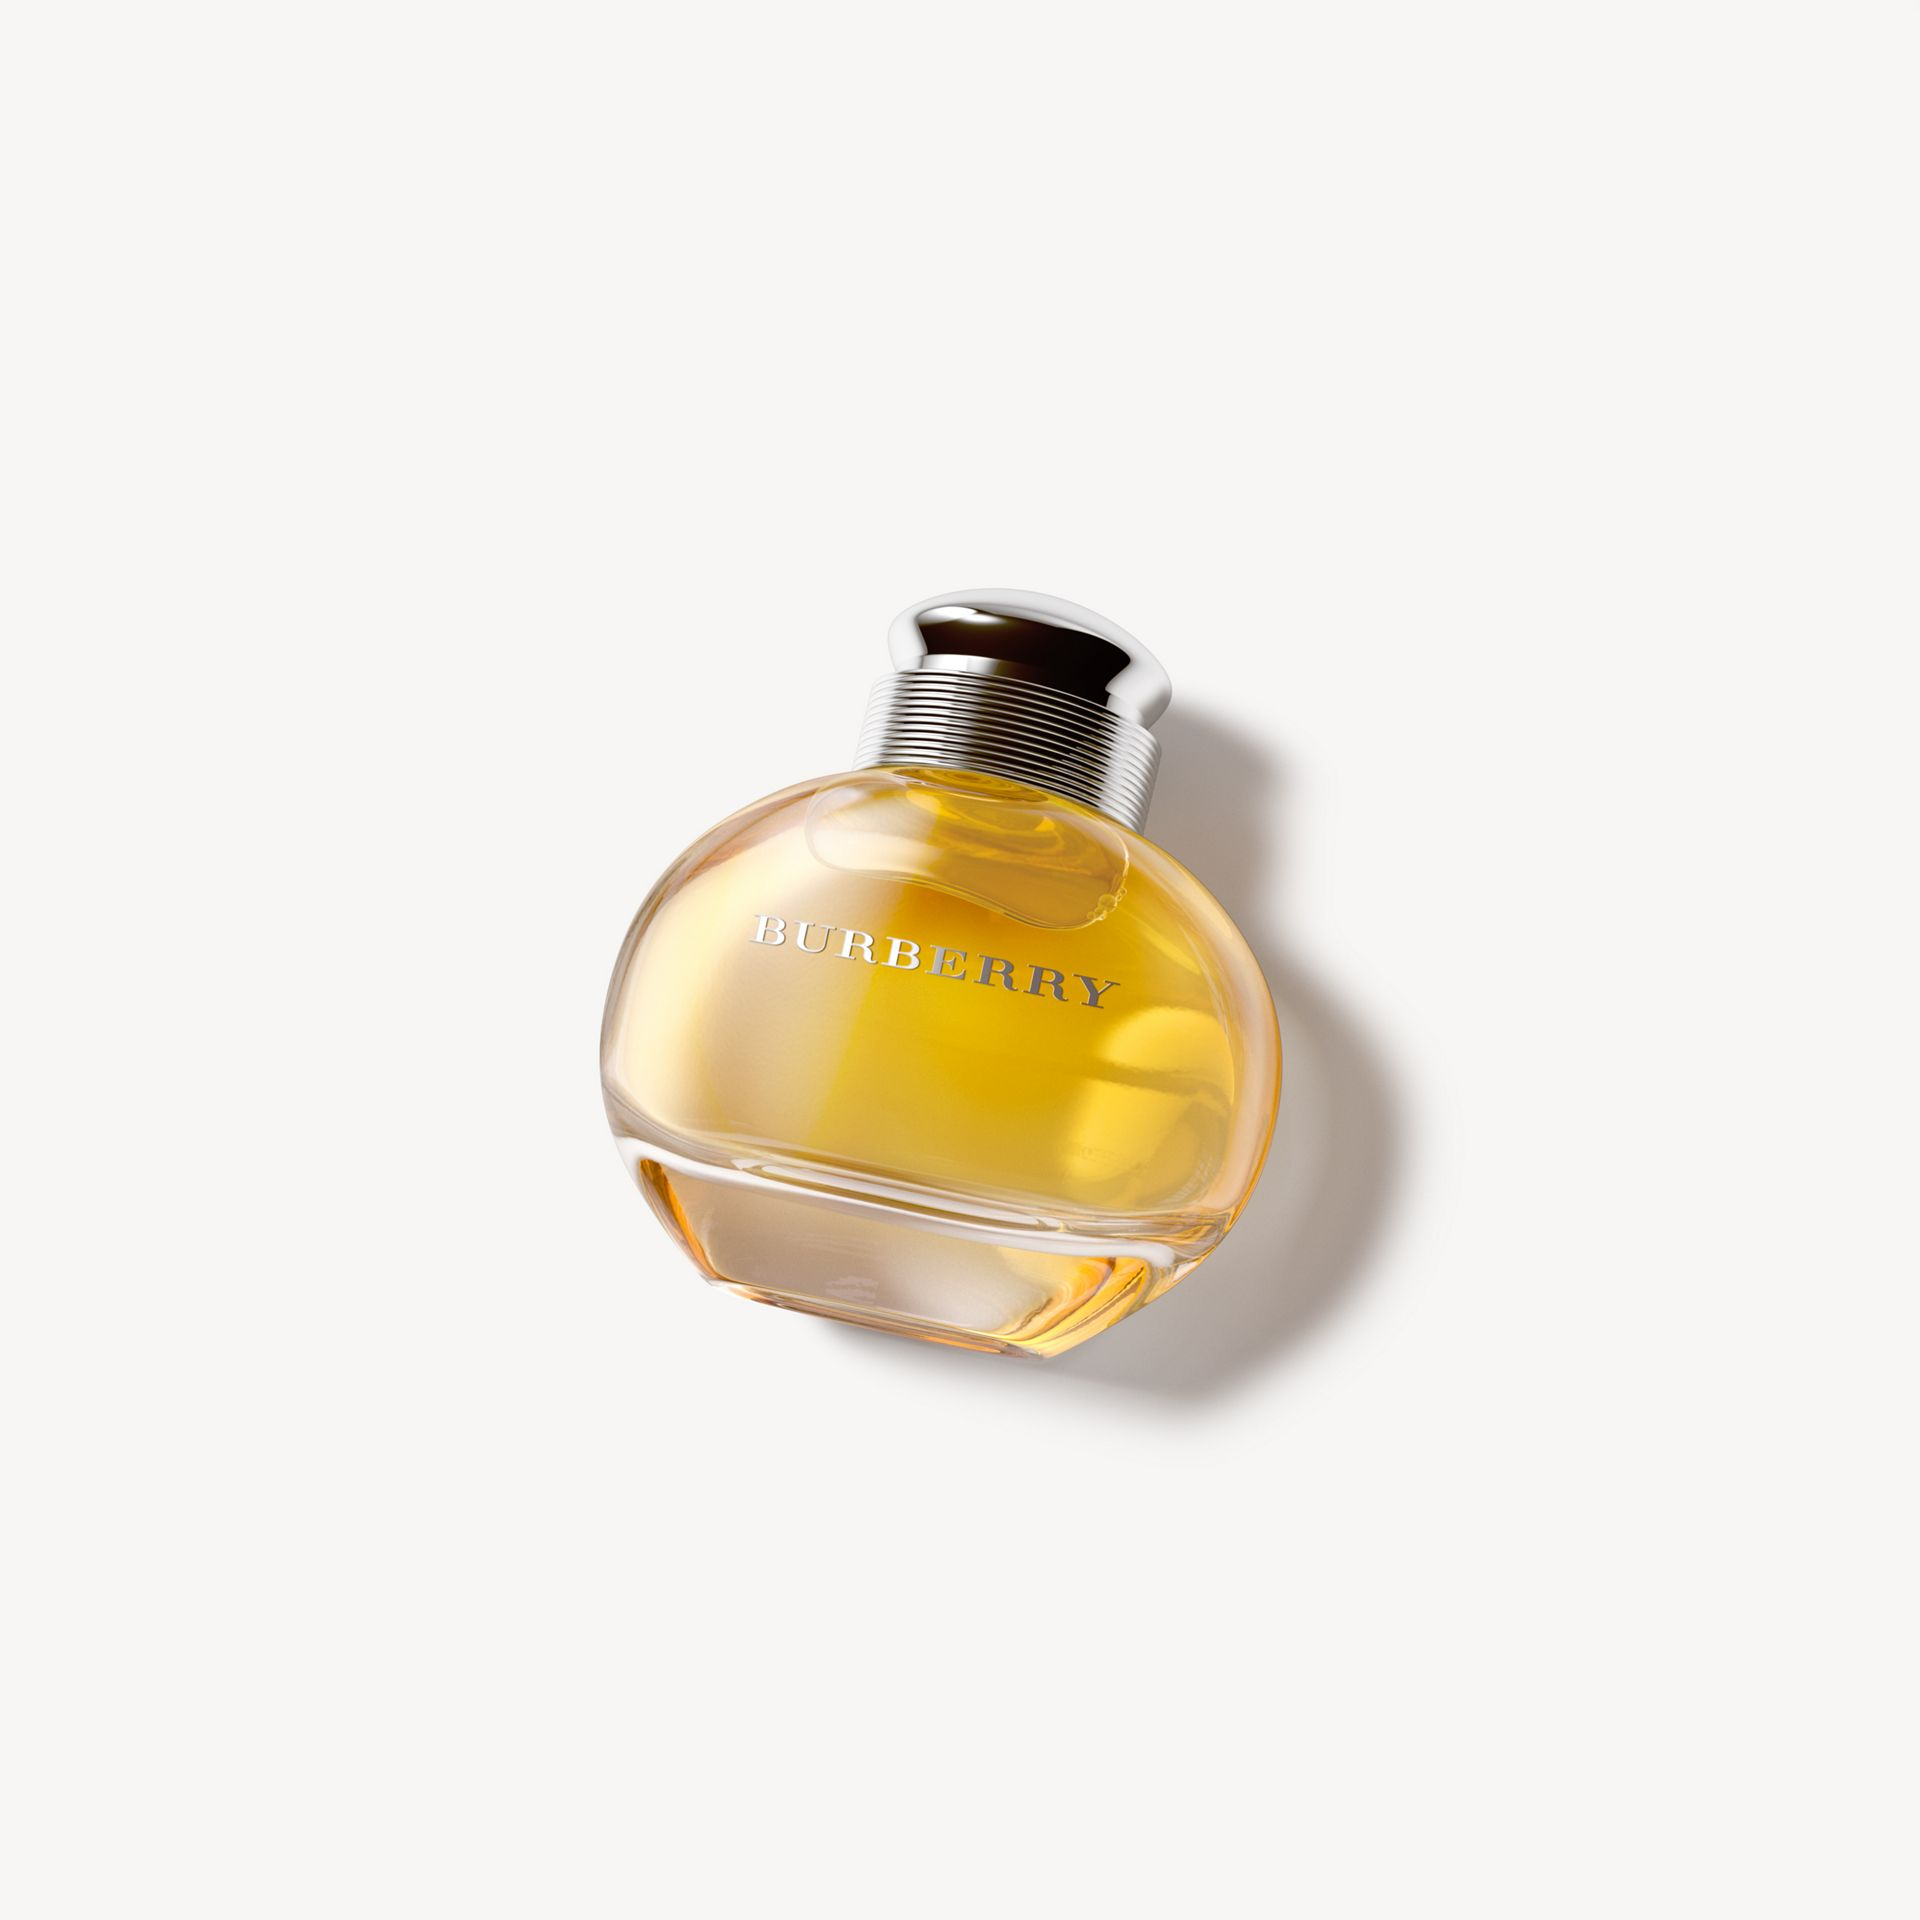 Парфюмерная вода Burberry For Women Eau de Parfum 50 мл - изображение 1